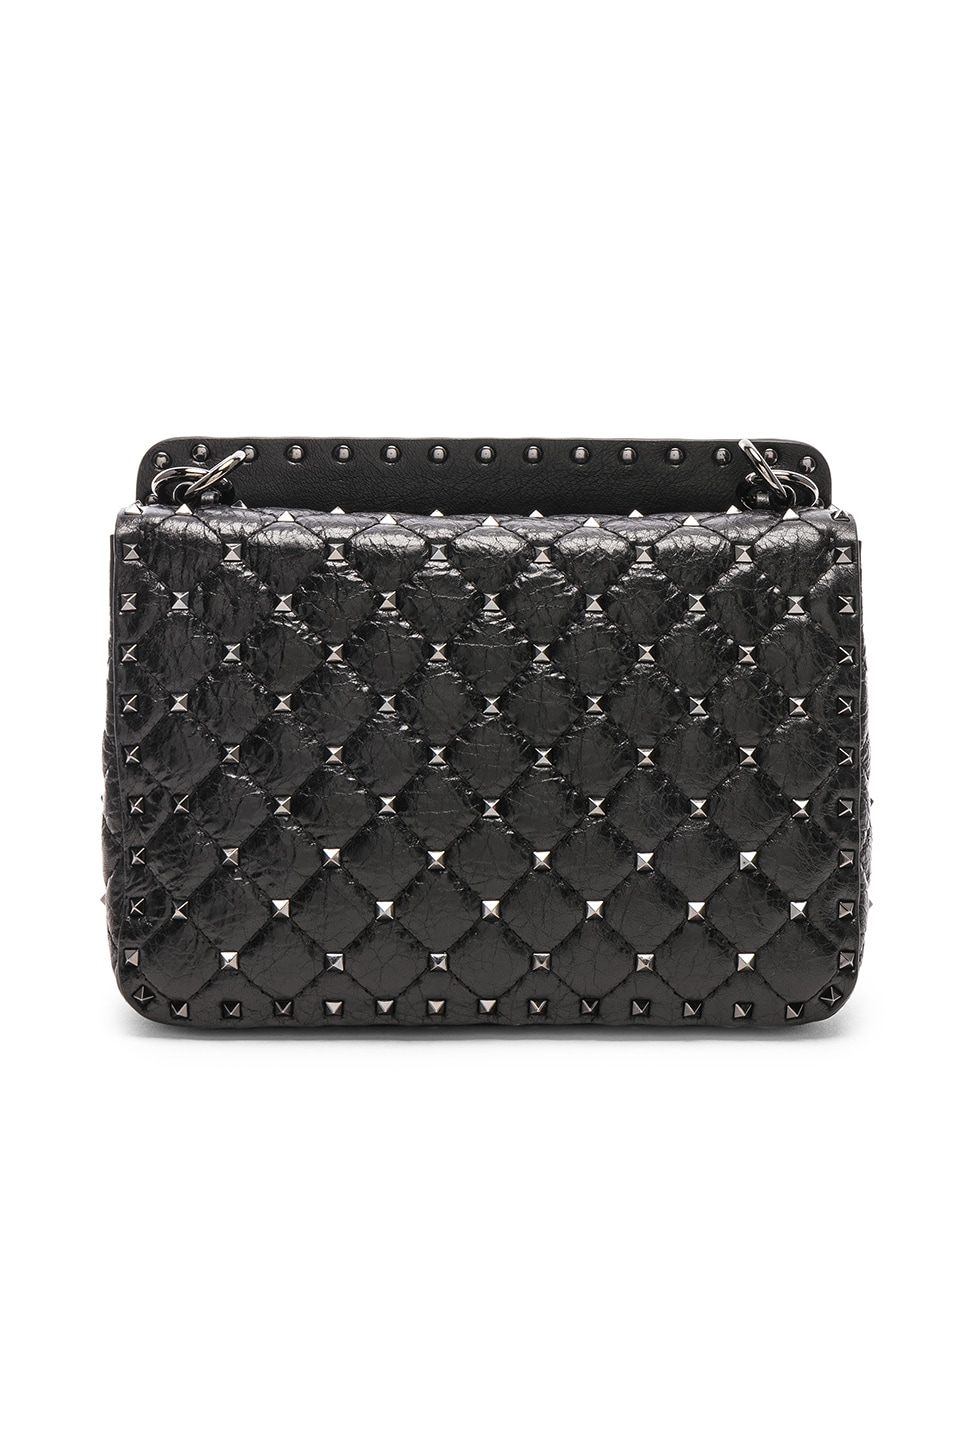 Image 3 of Valentino Rockstud Spike Medium Shoulder Bag in Nero